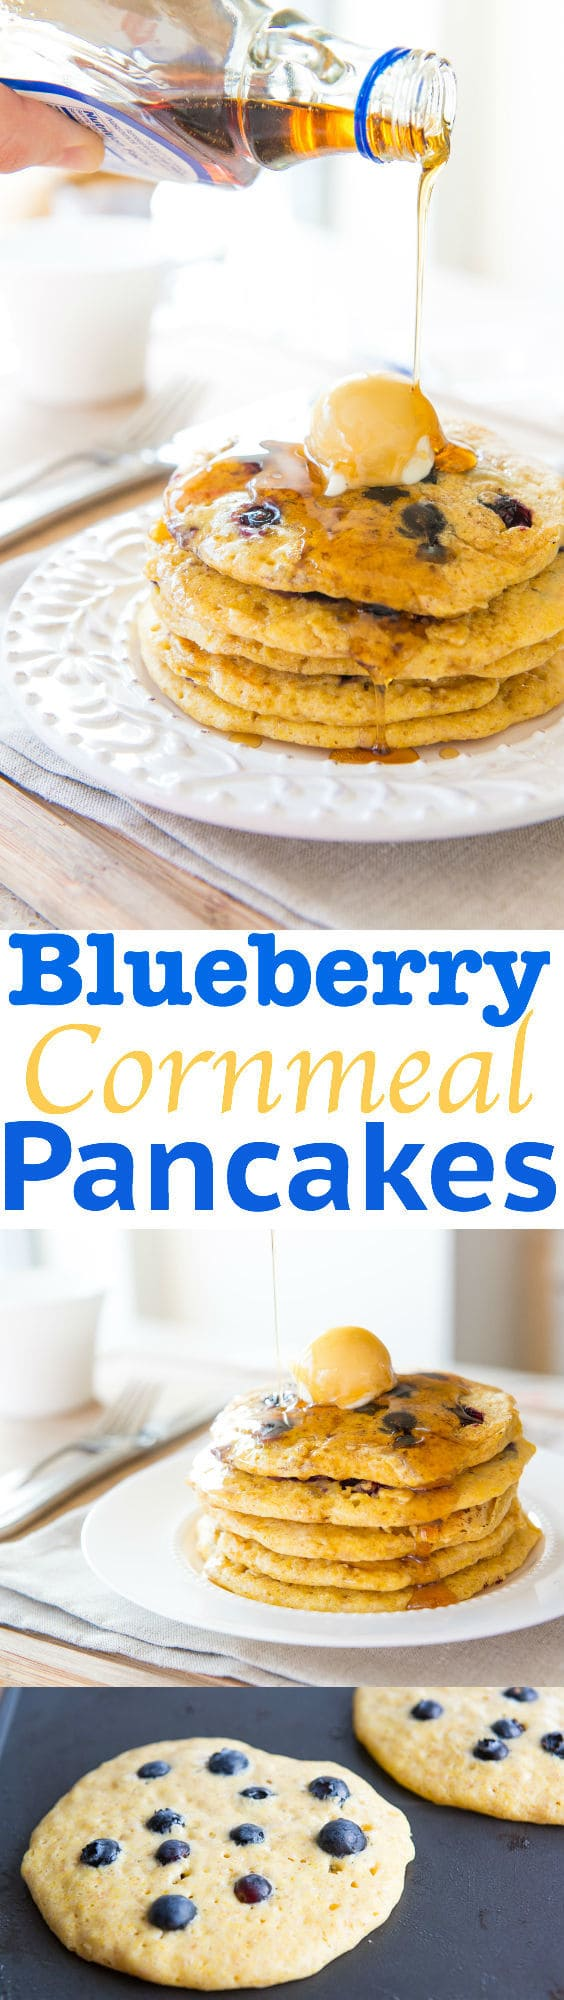 Blueberry Cornmeal Pancakes Recipe